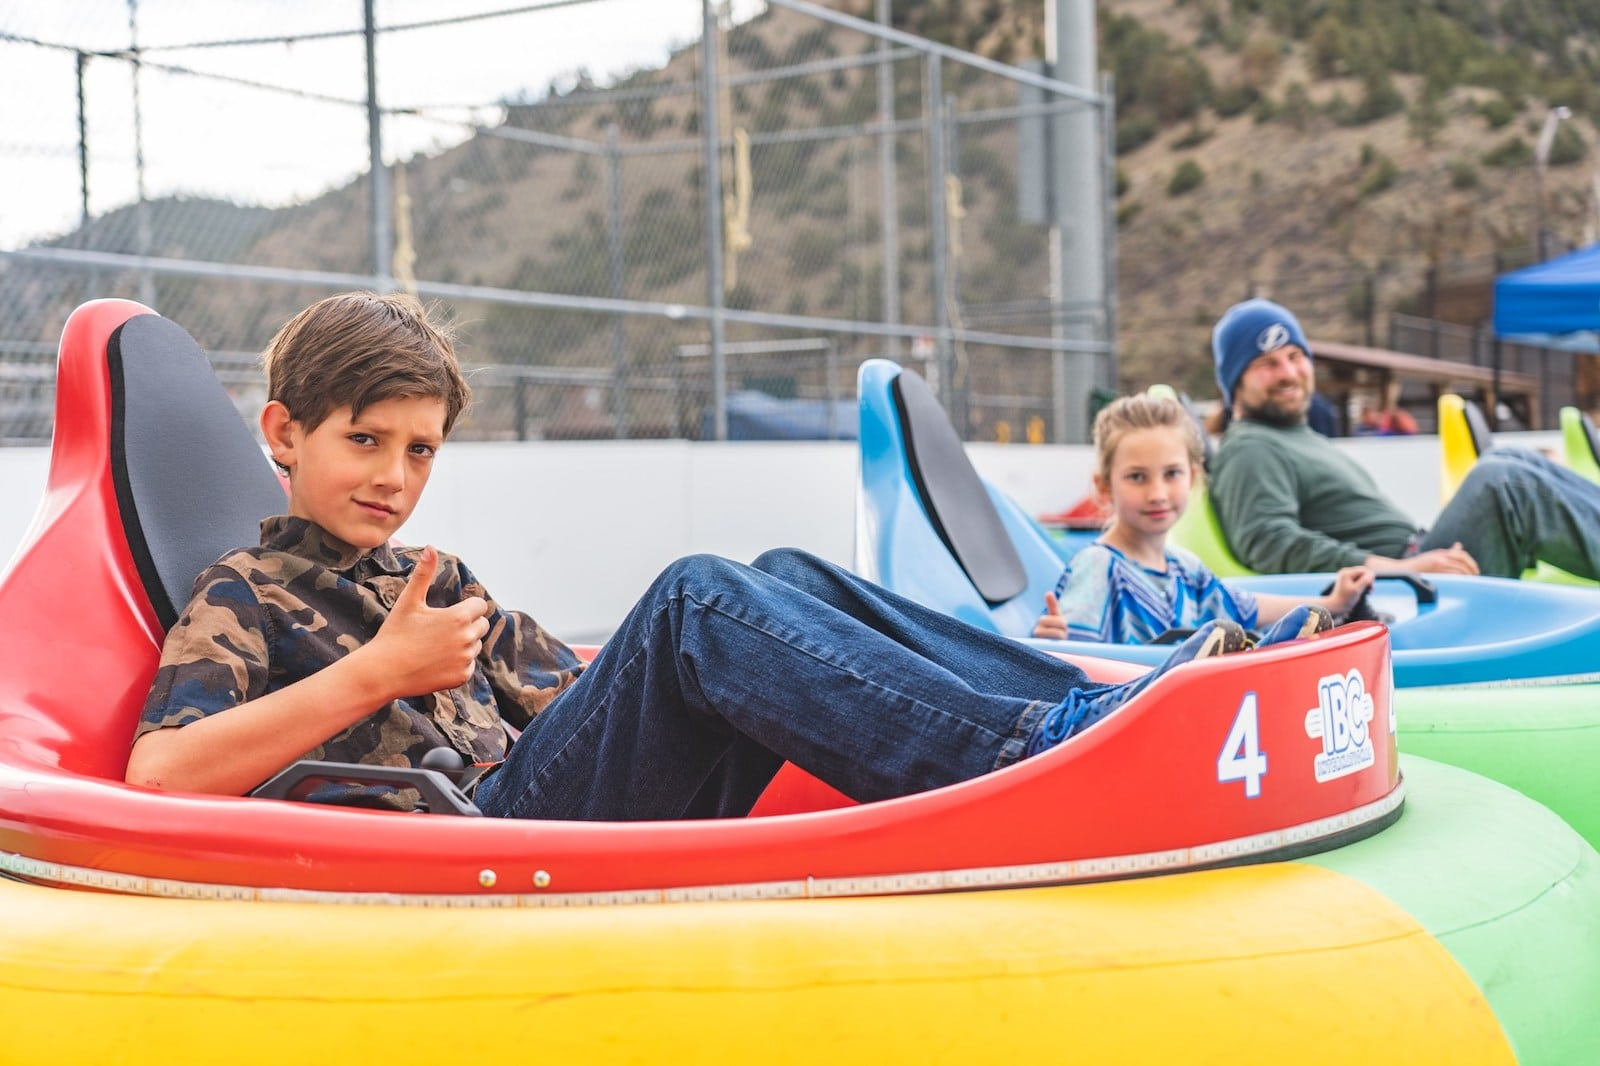 Image of the Frozen Fire Rink bumper cars in Idaho Springs, CO